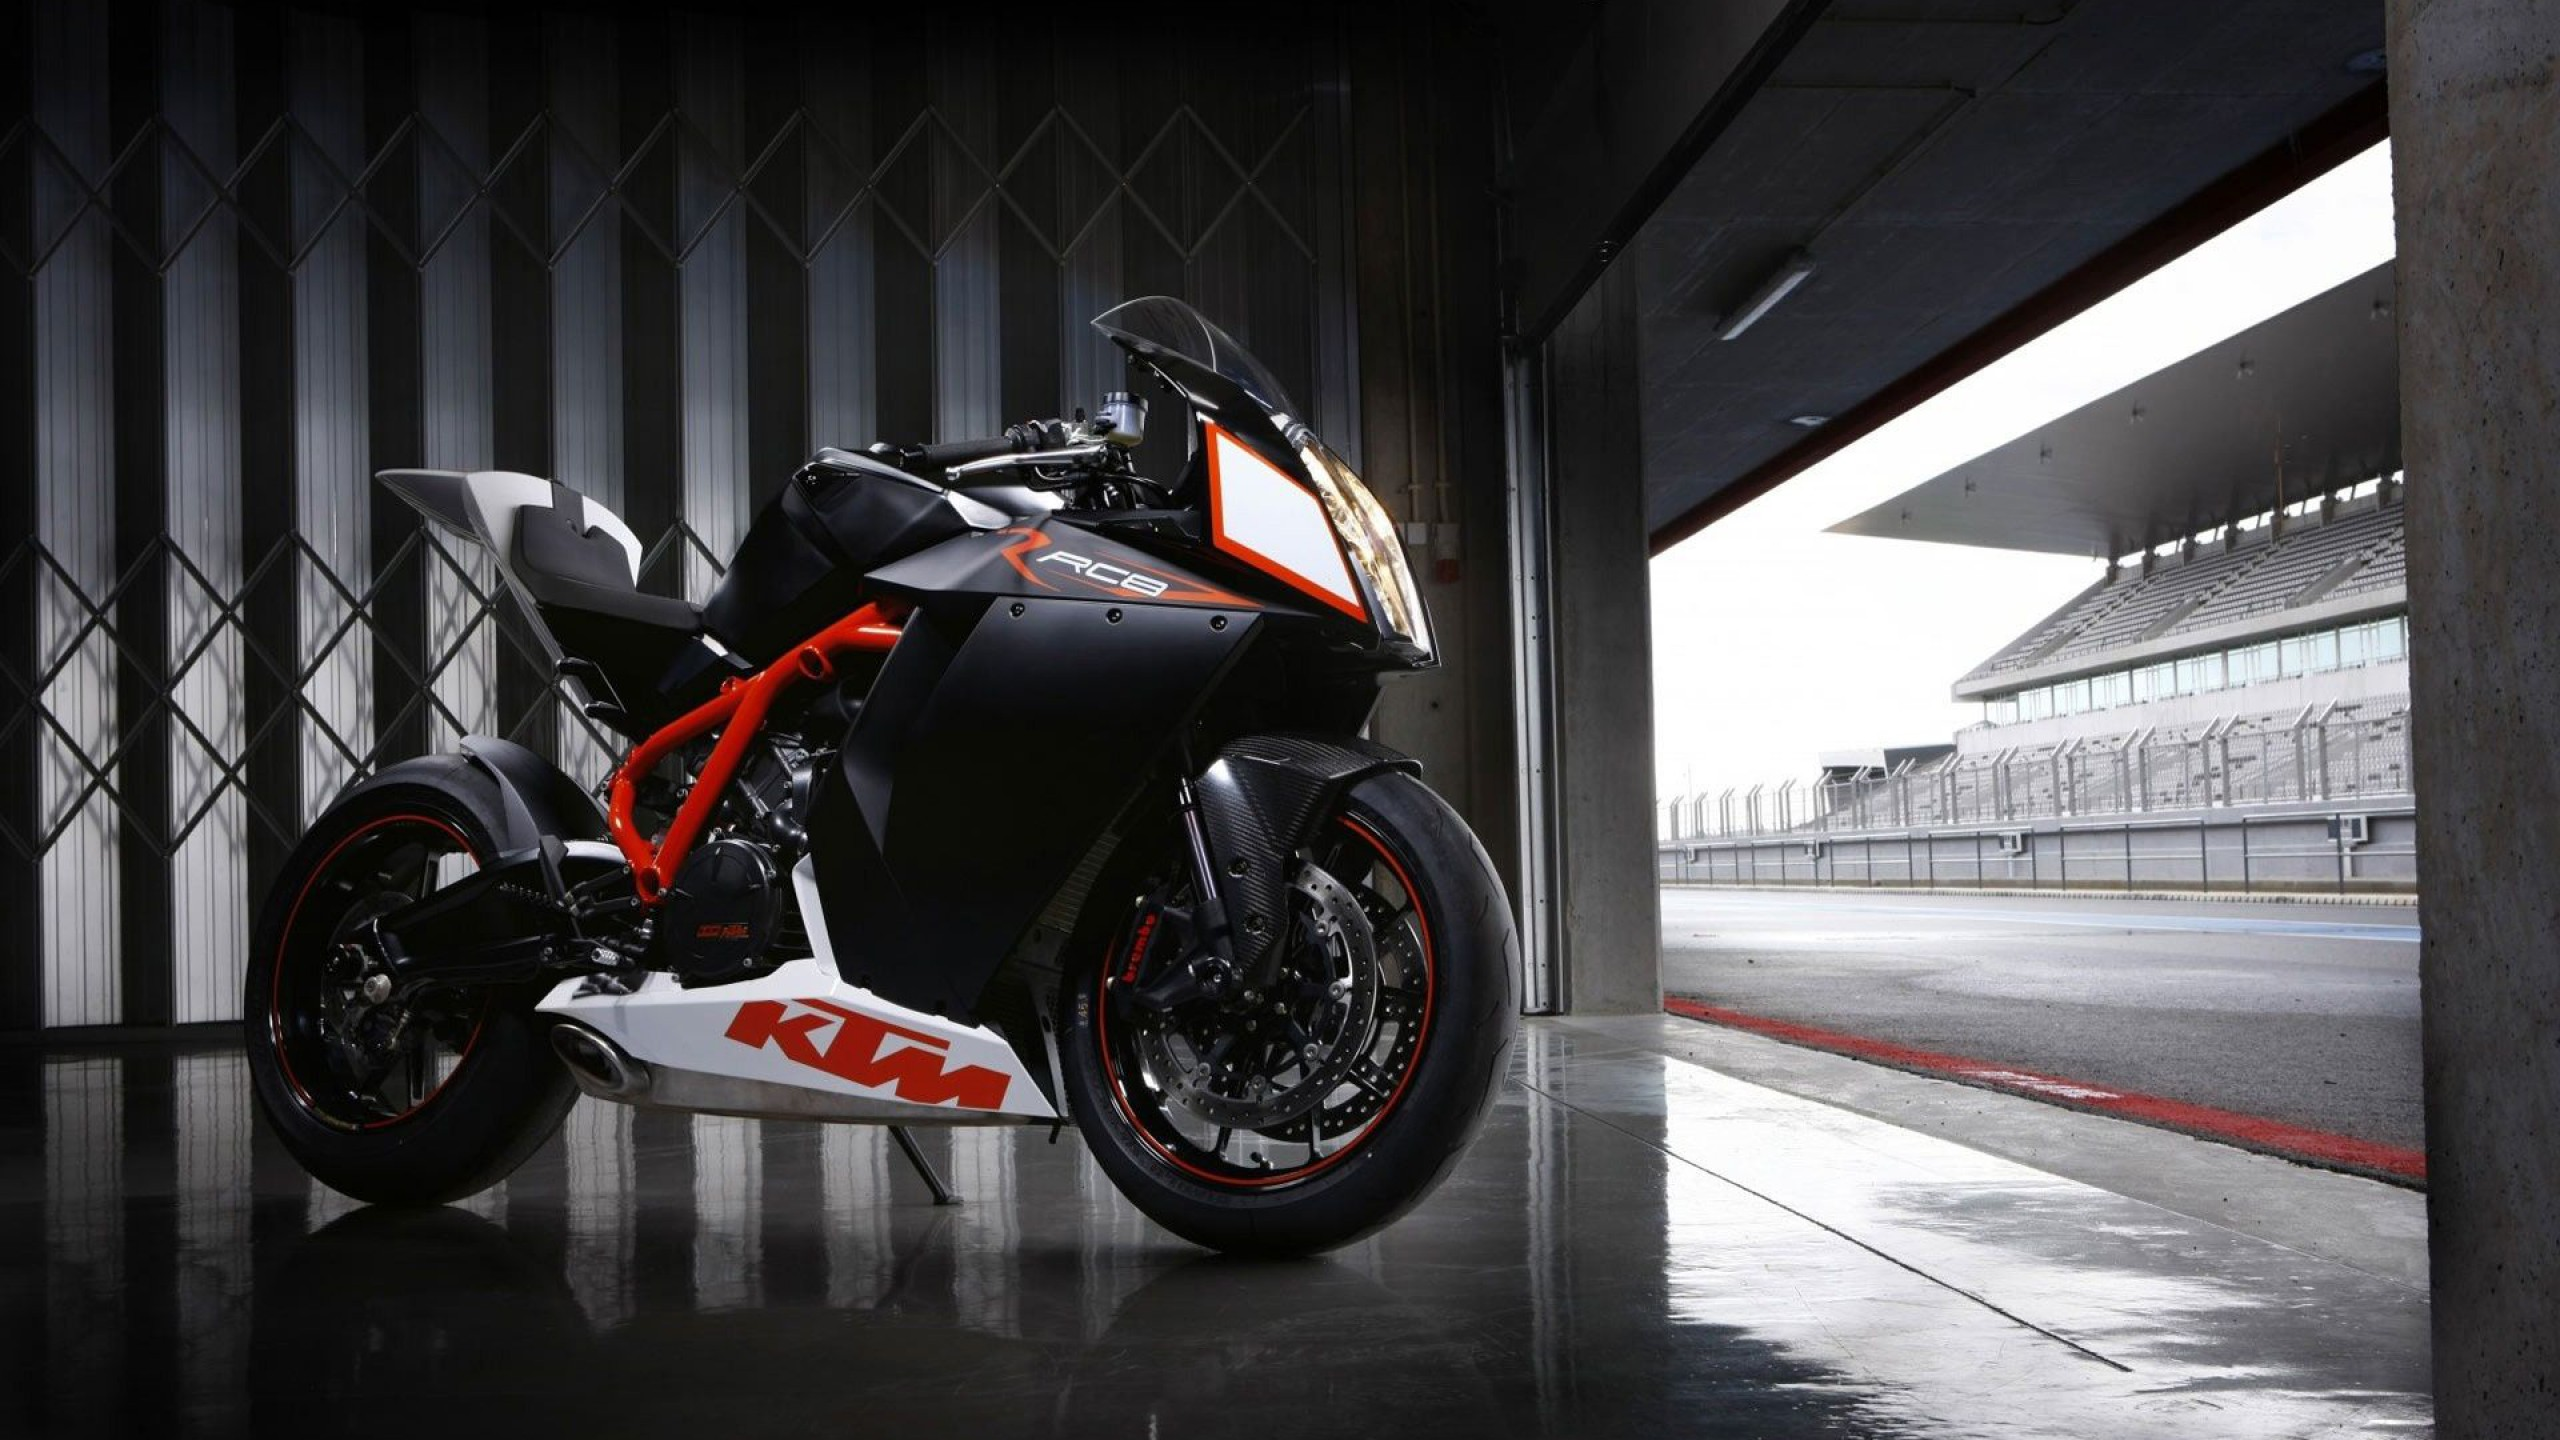 KTM Duke 690 Freestyle Bike HD Wallpaper Pictu 2139 2560x1440